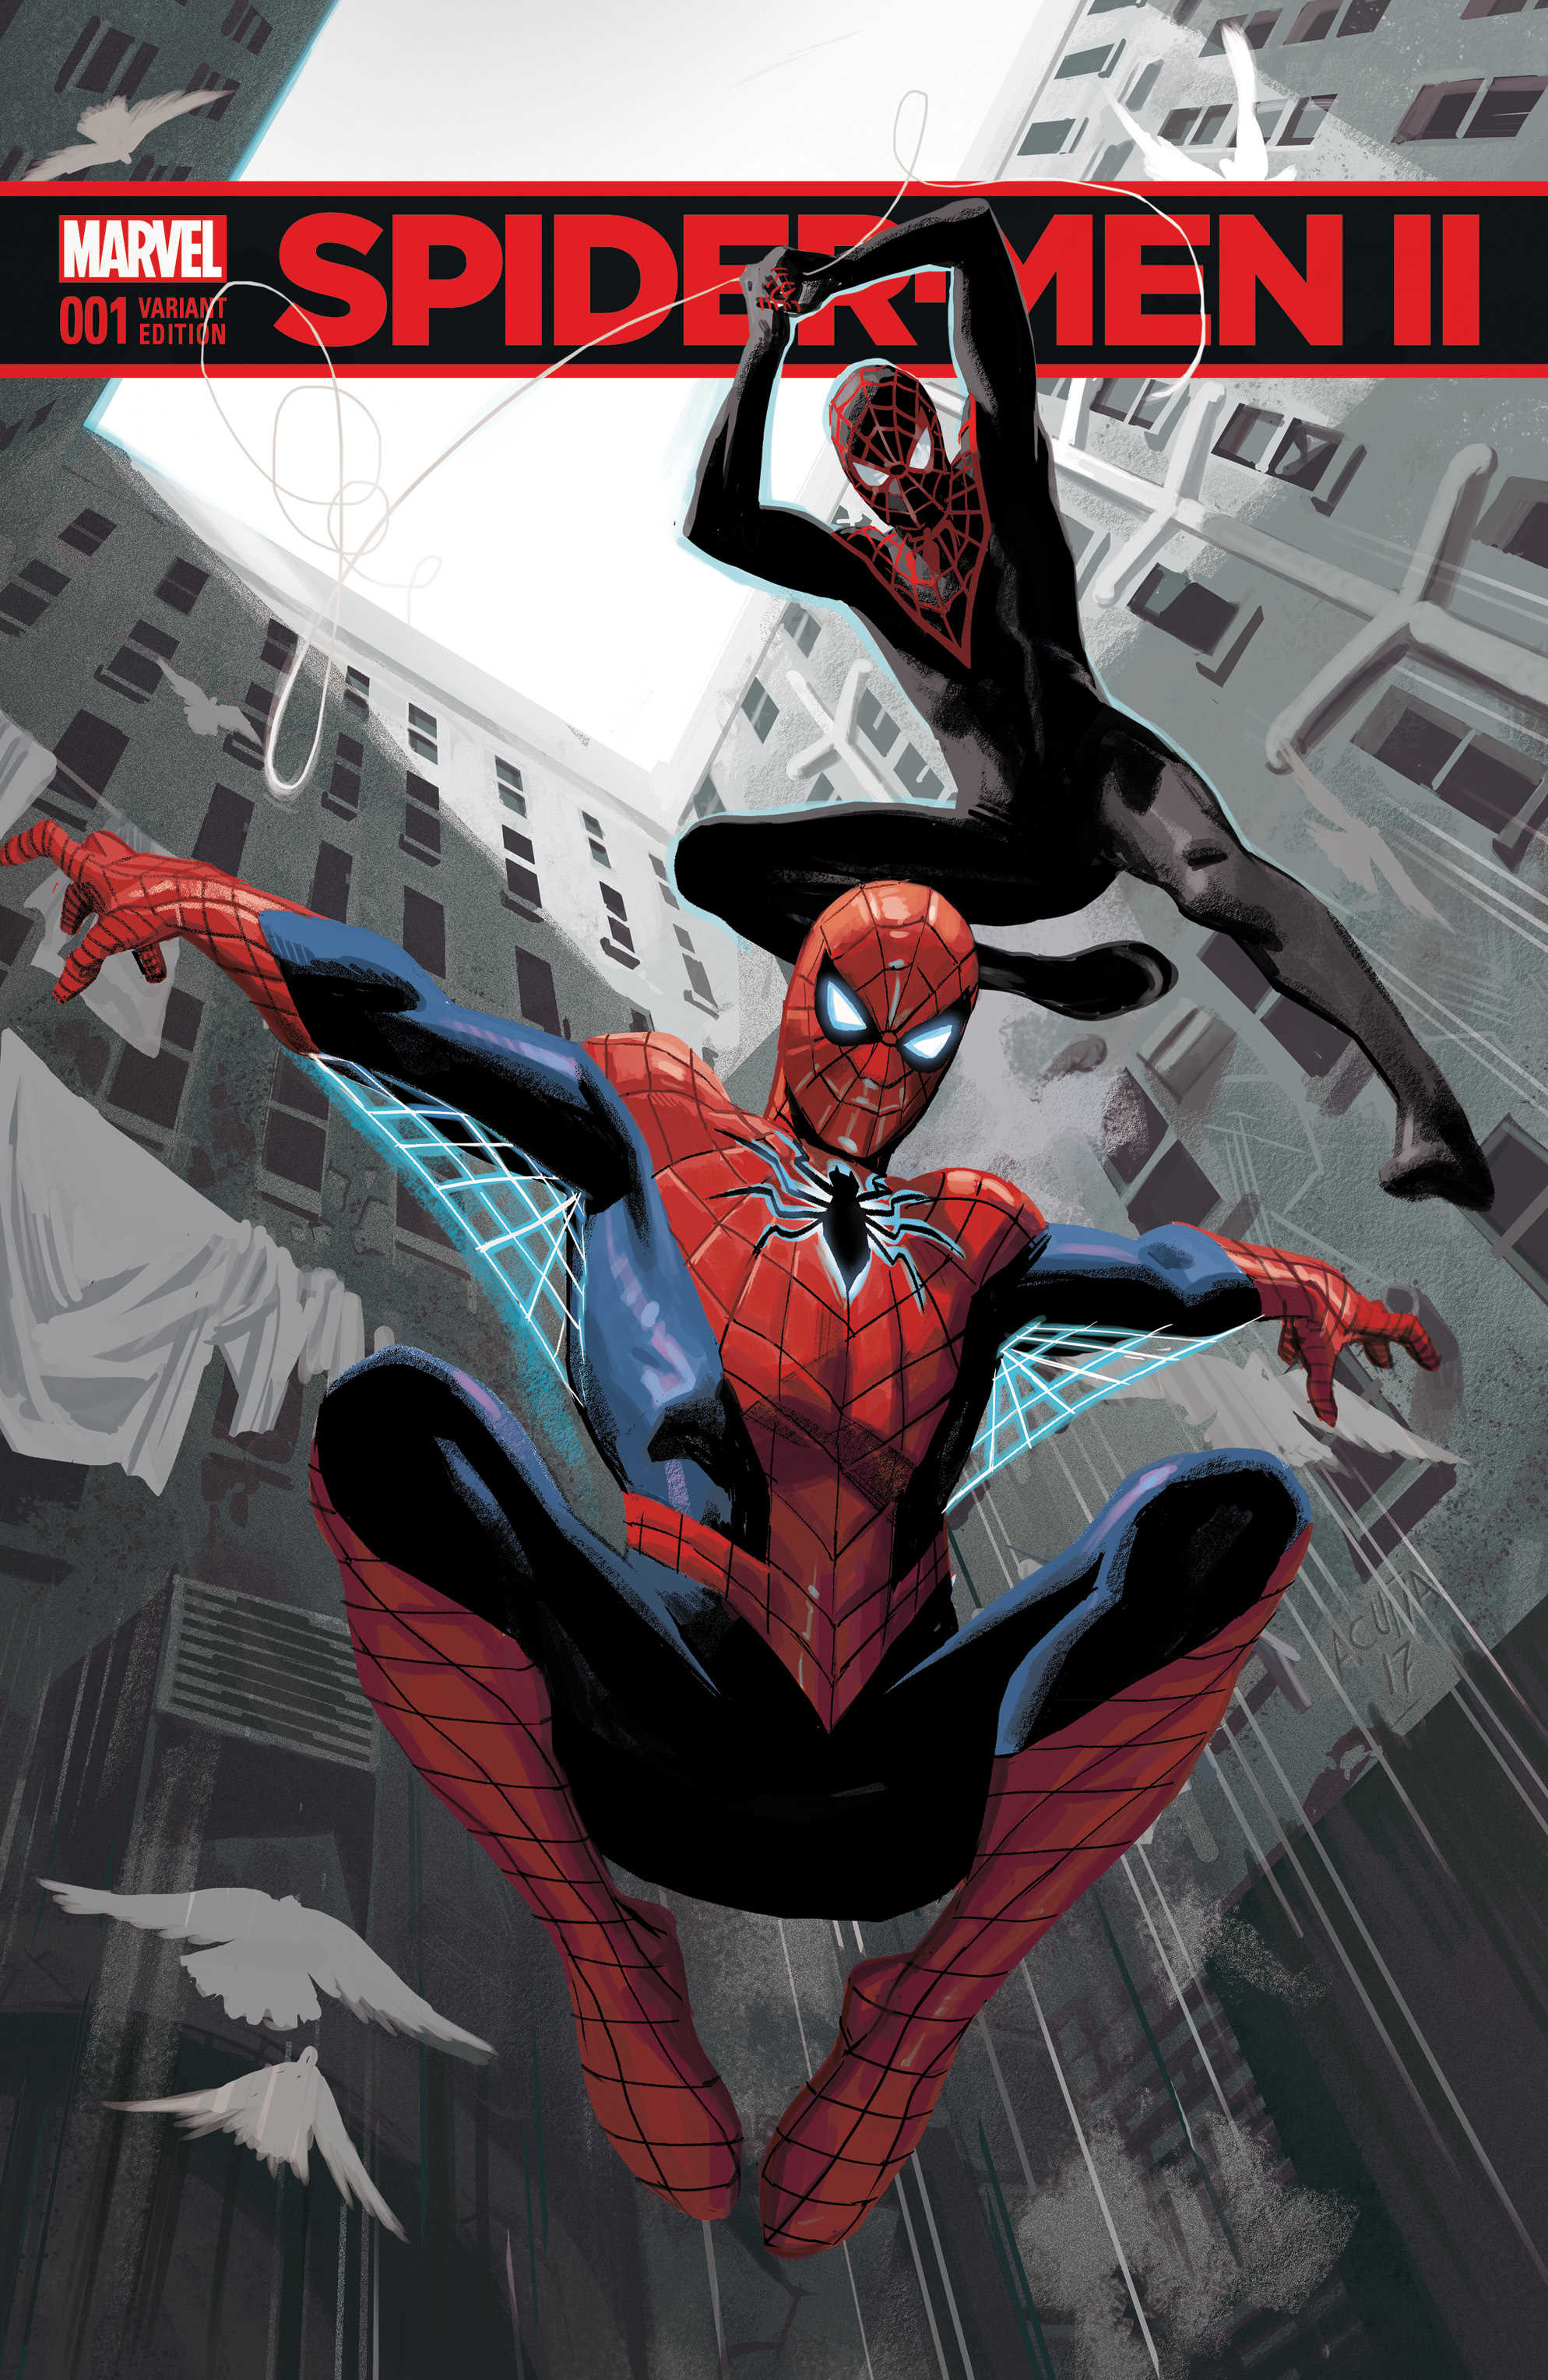 Here's Your First Look Inside The Long Awaited Spider-Men II #1